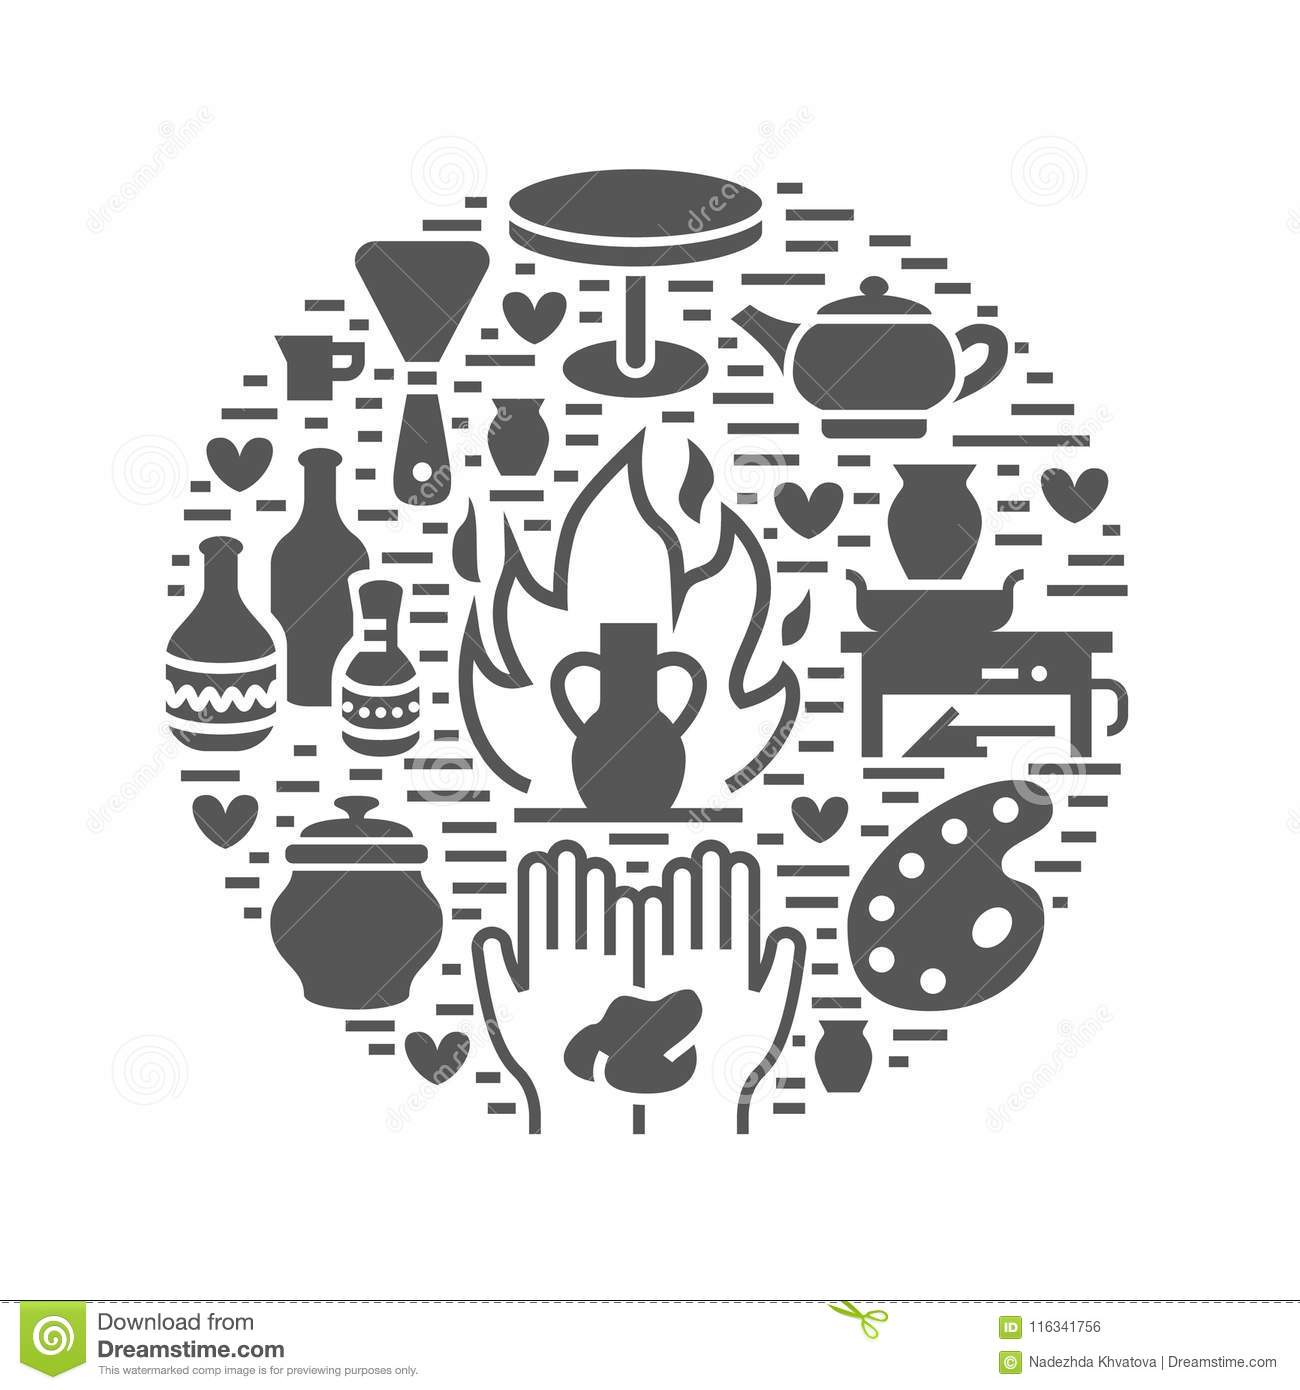 Pottery workshop, ceramics classes banner illustration. Vector glyph icon of clay studio tools. Hand building